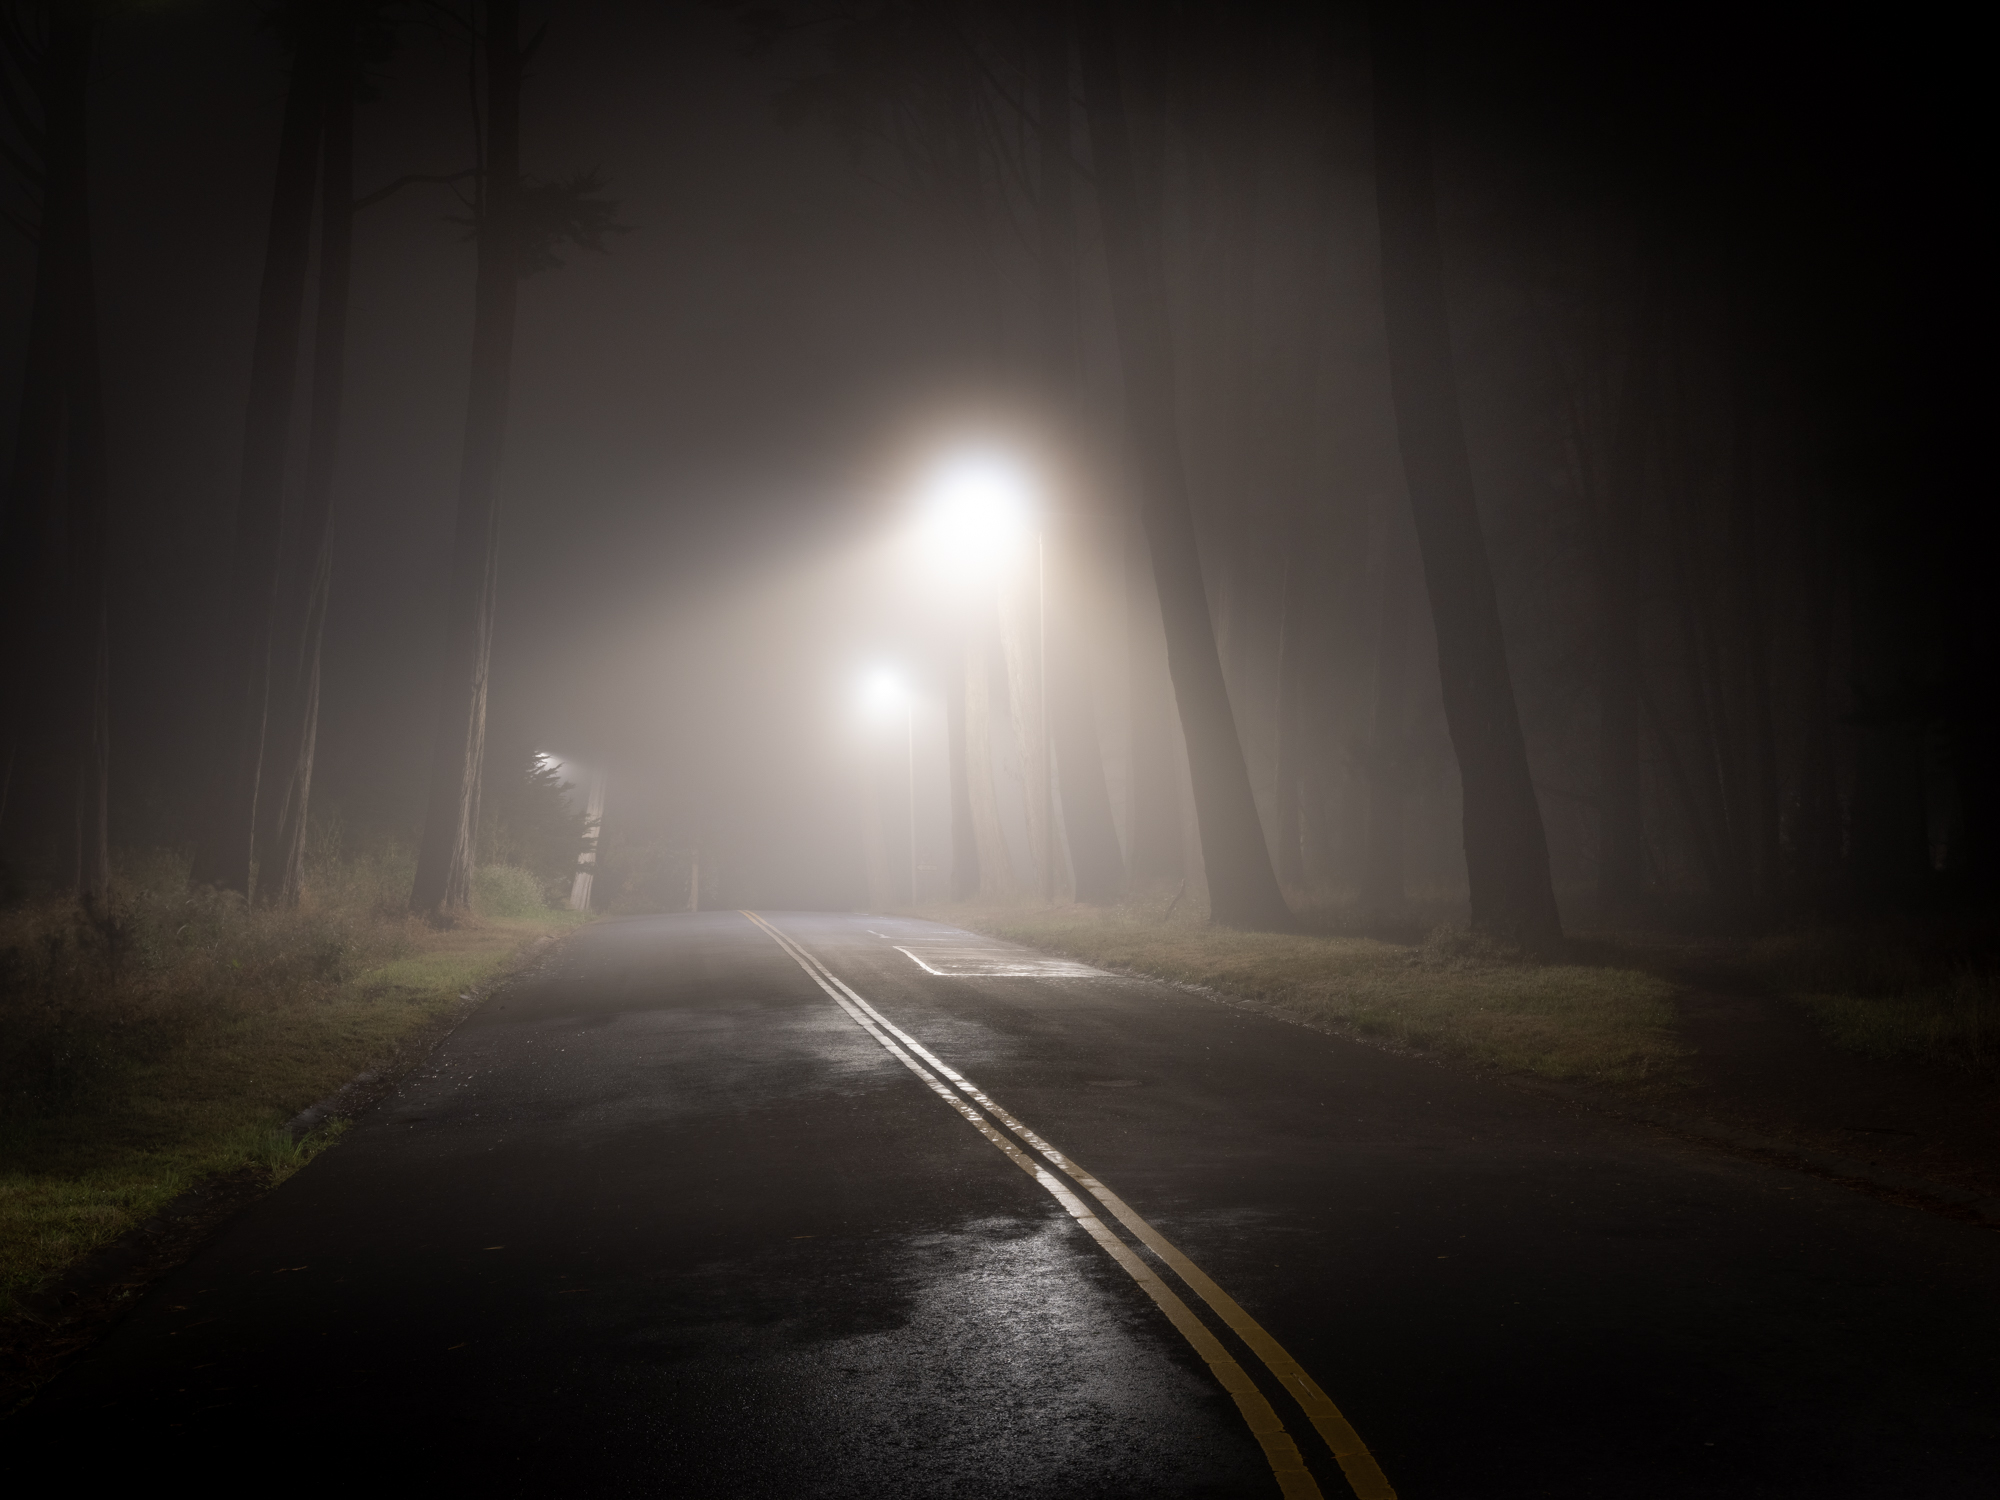 Road of trees and fog at night.